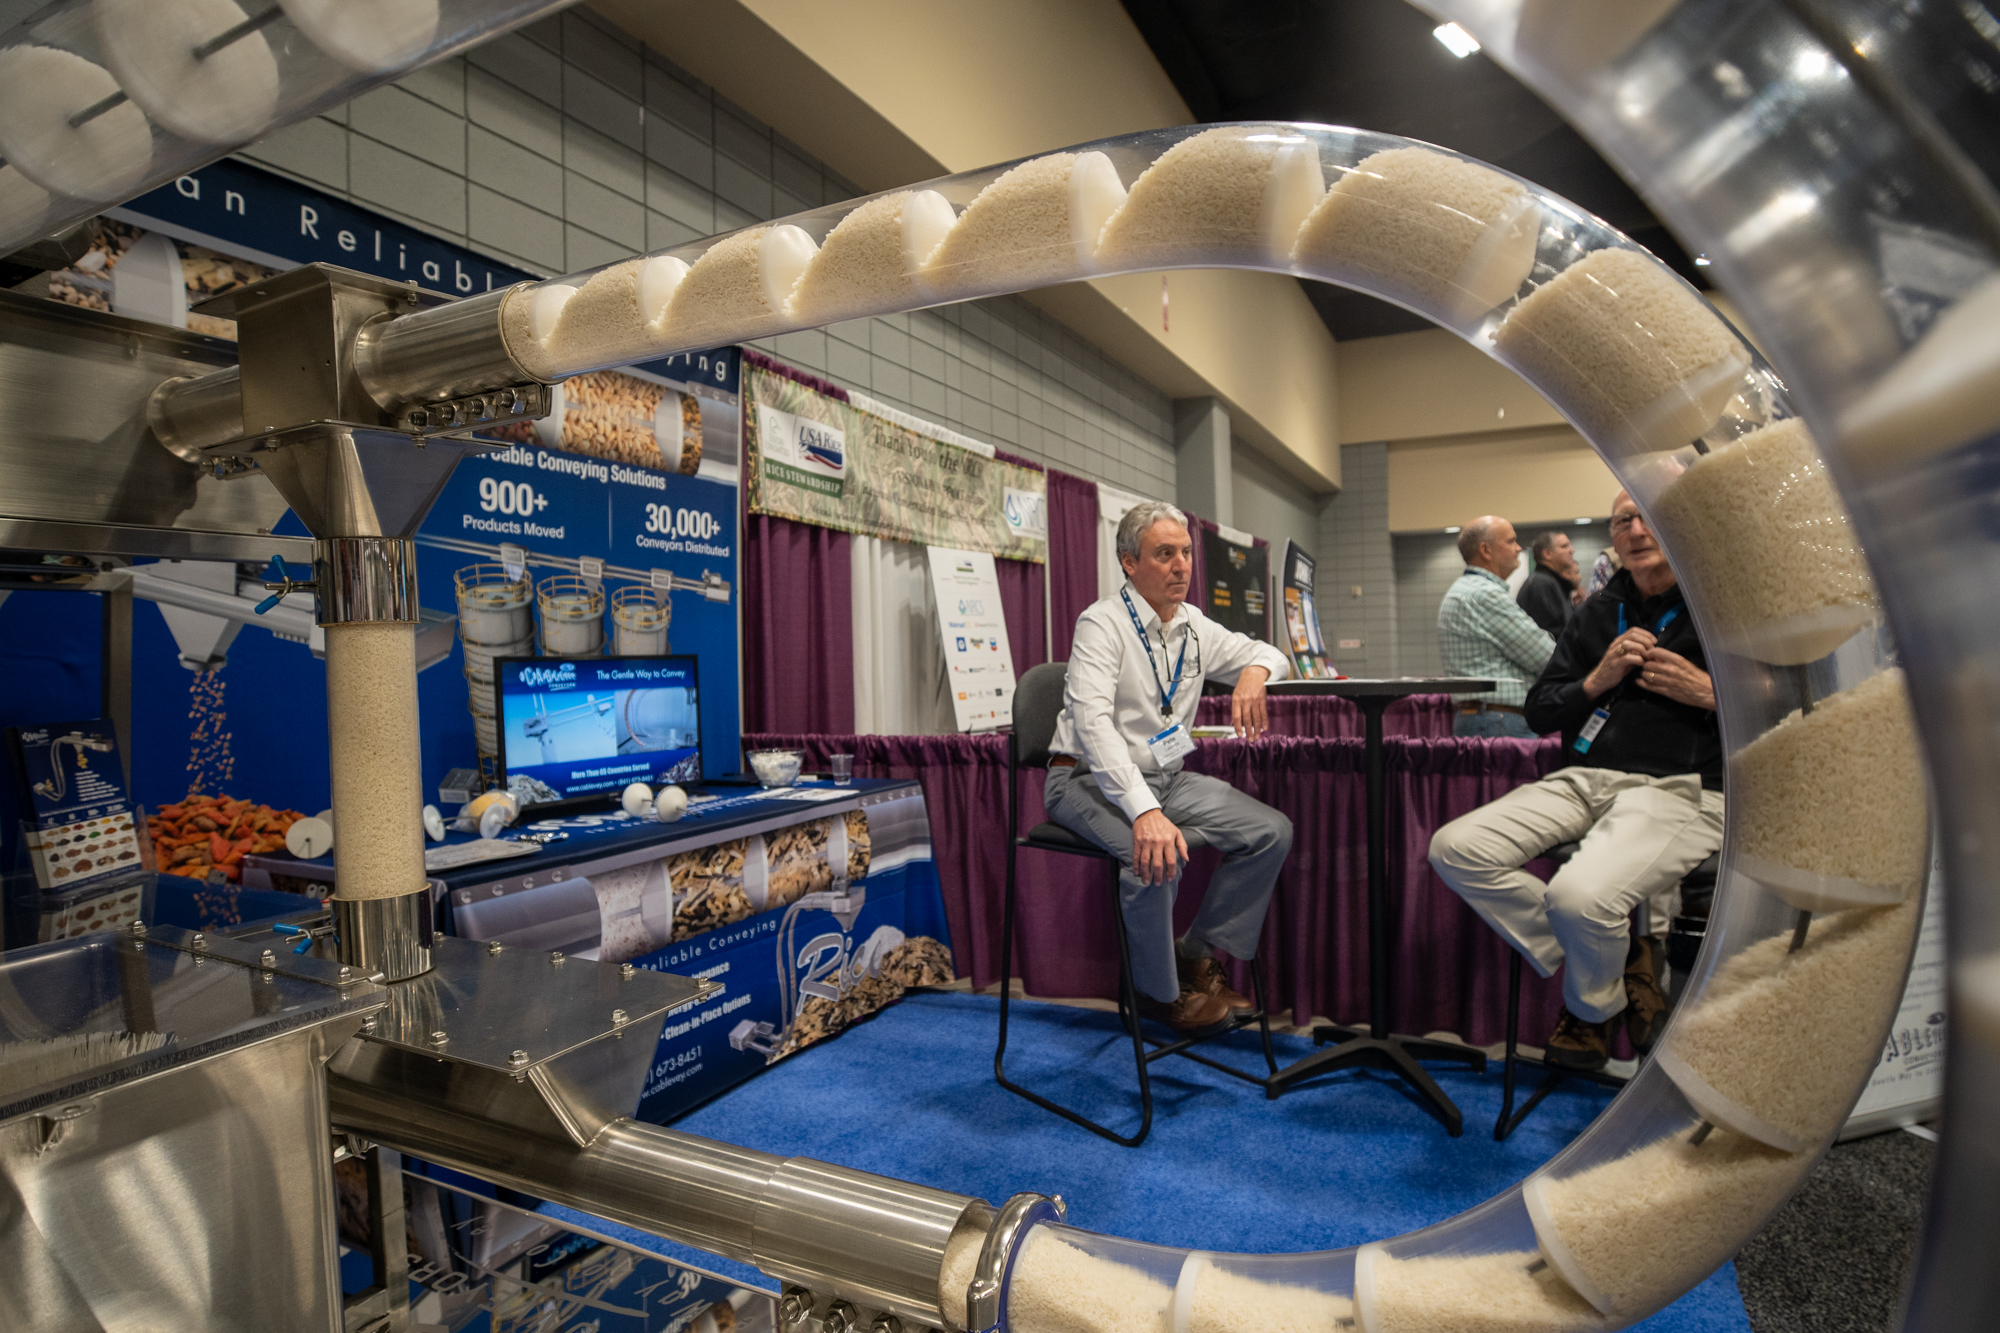 Milling technology on display in the Exhibit Hall